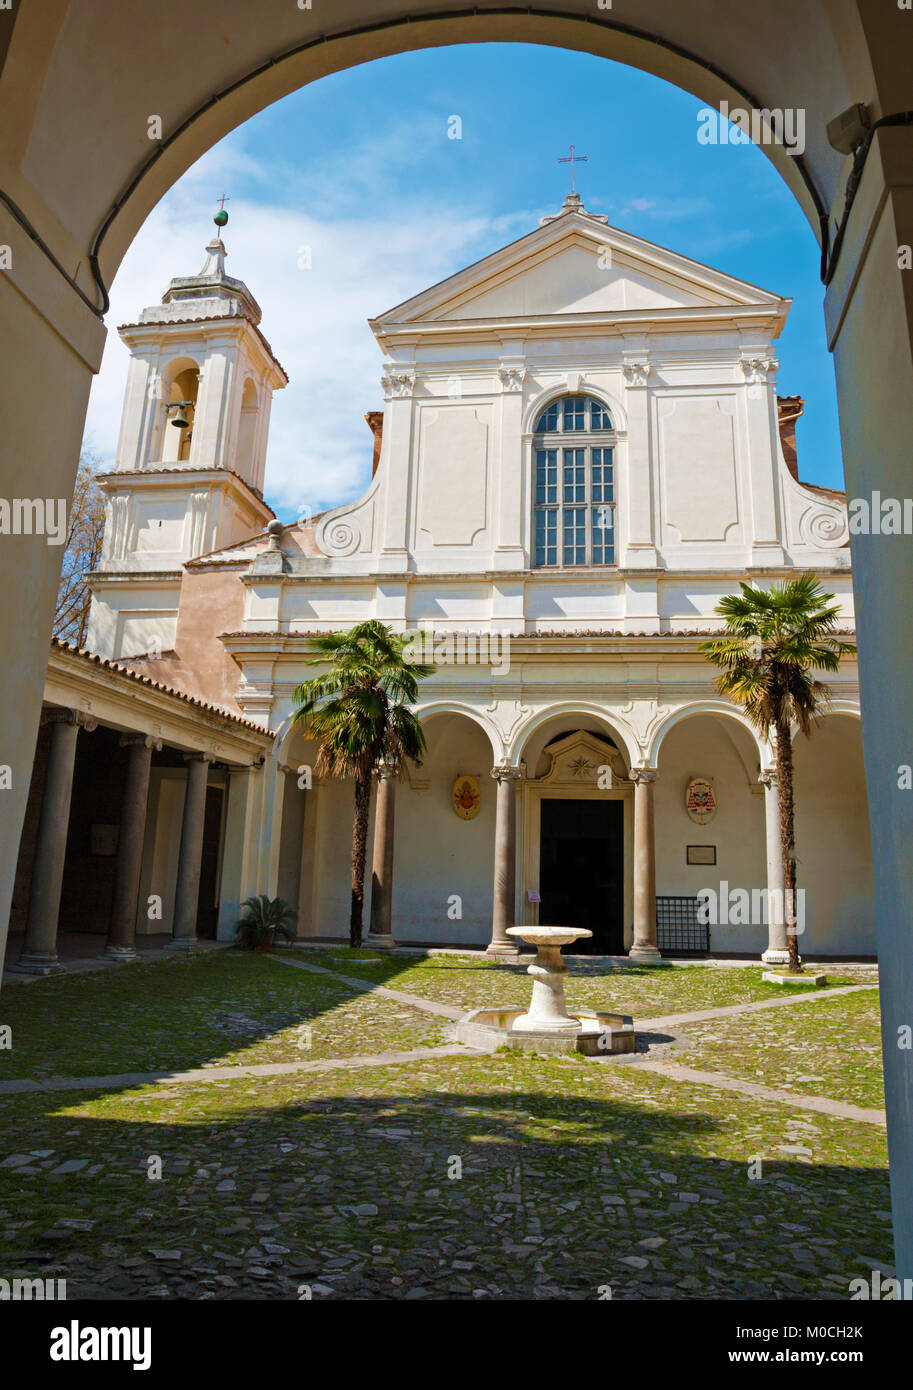 ROME, ITALY - MARCH , 2012: The chiesa di San Clemente with the atrium. Stock Photo